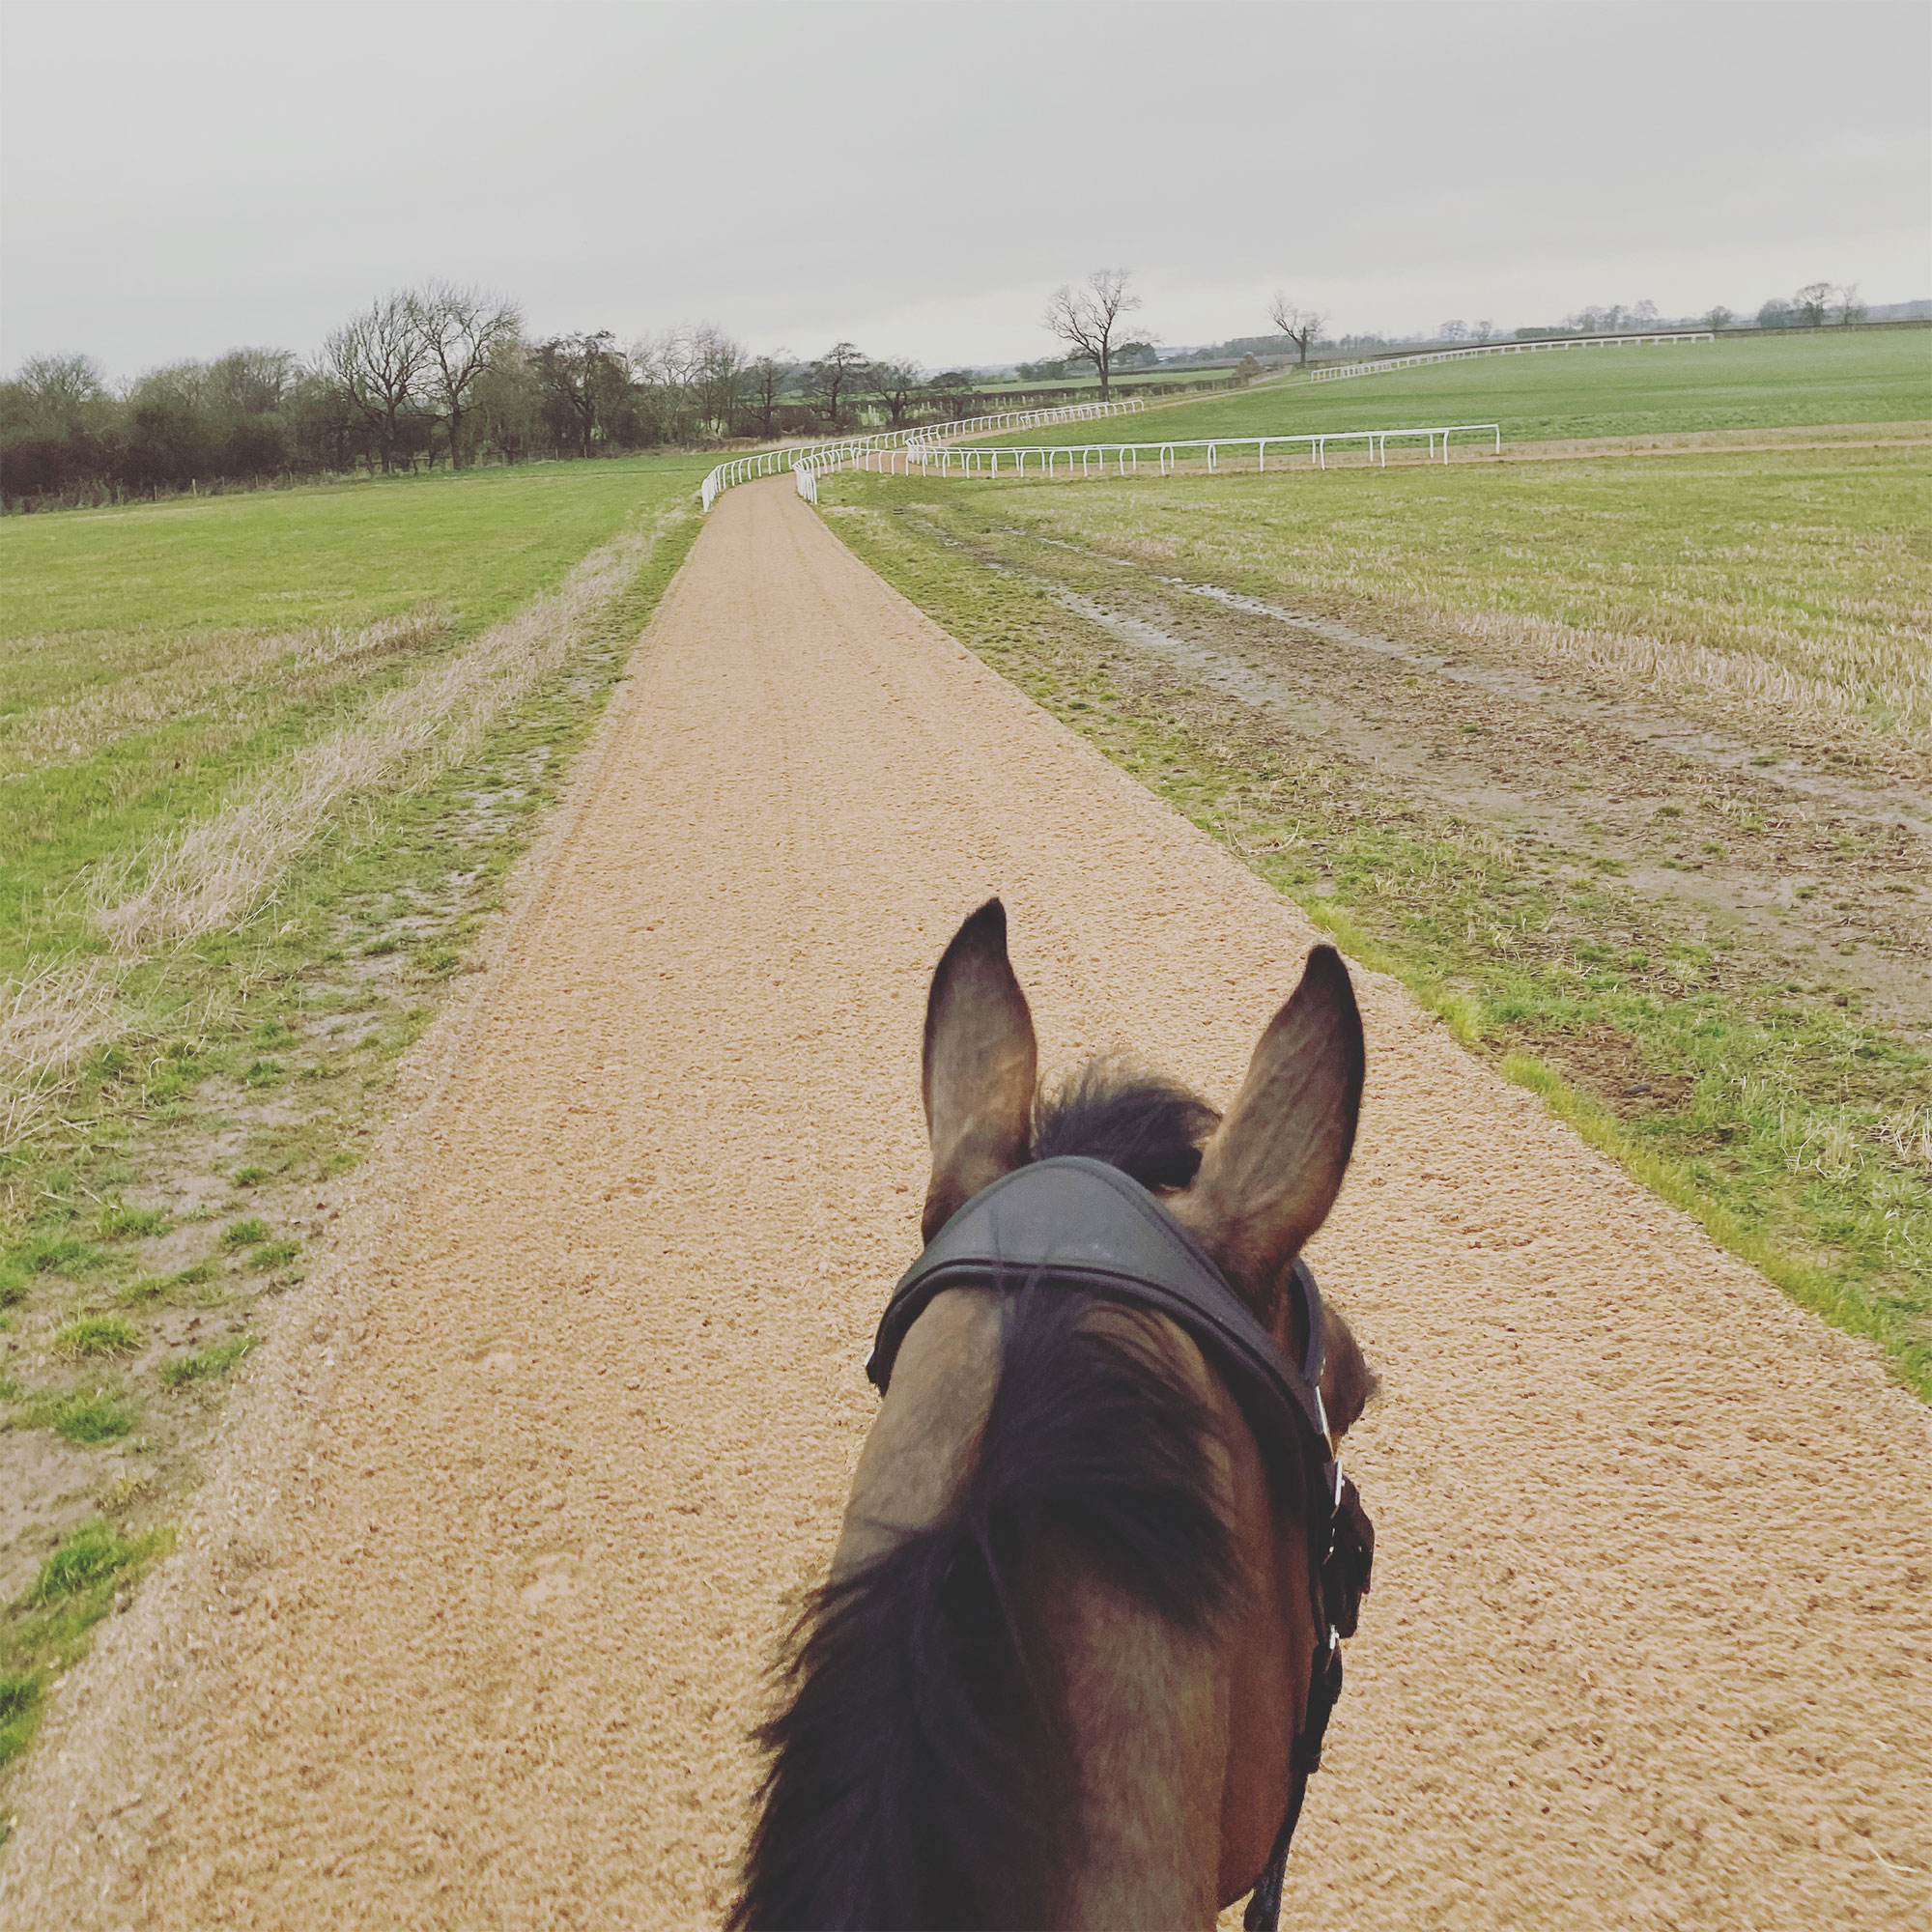 View of Gallops Through Horses Ears